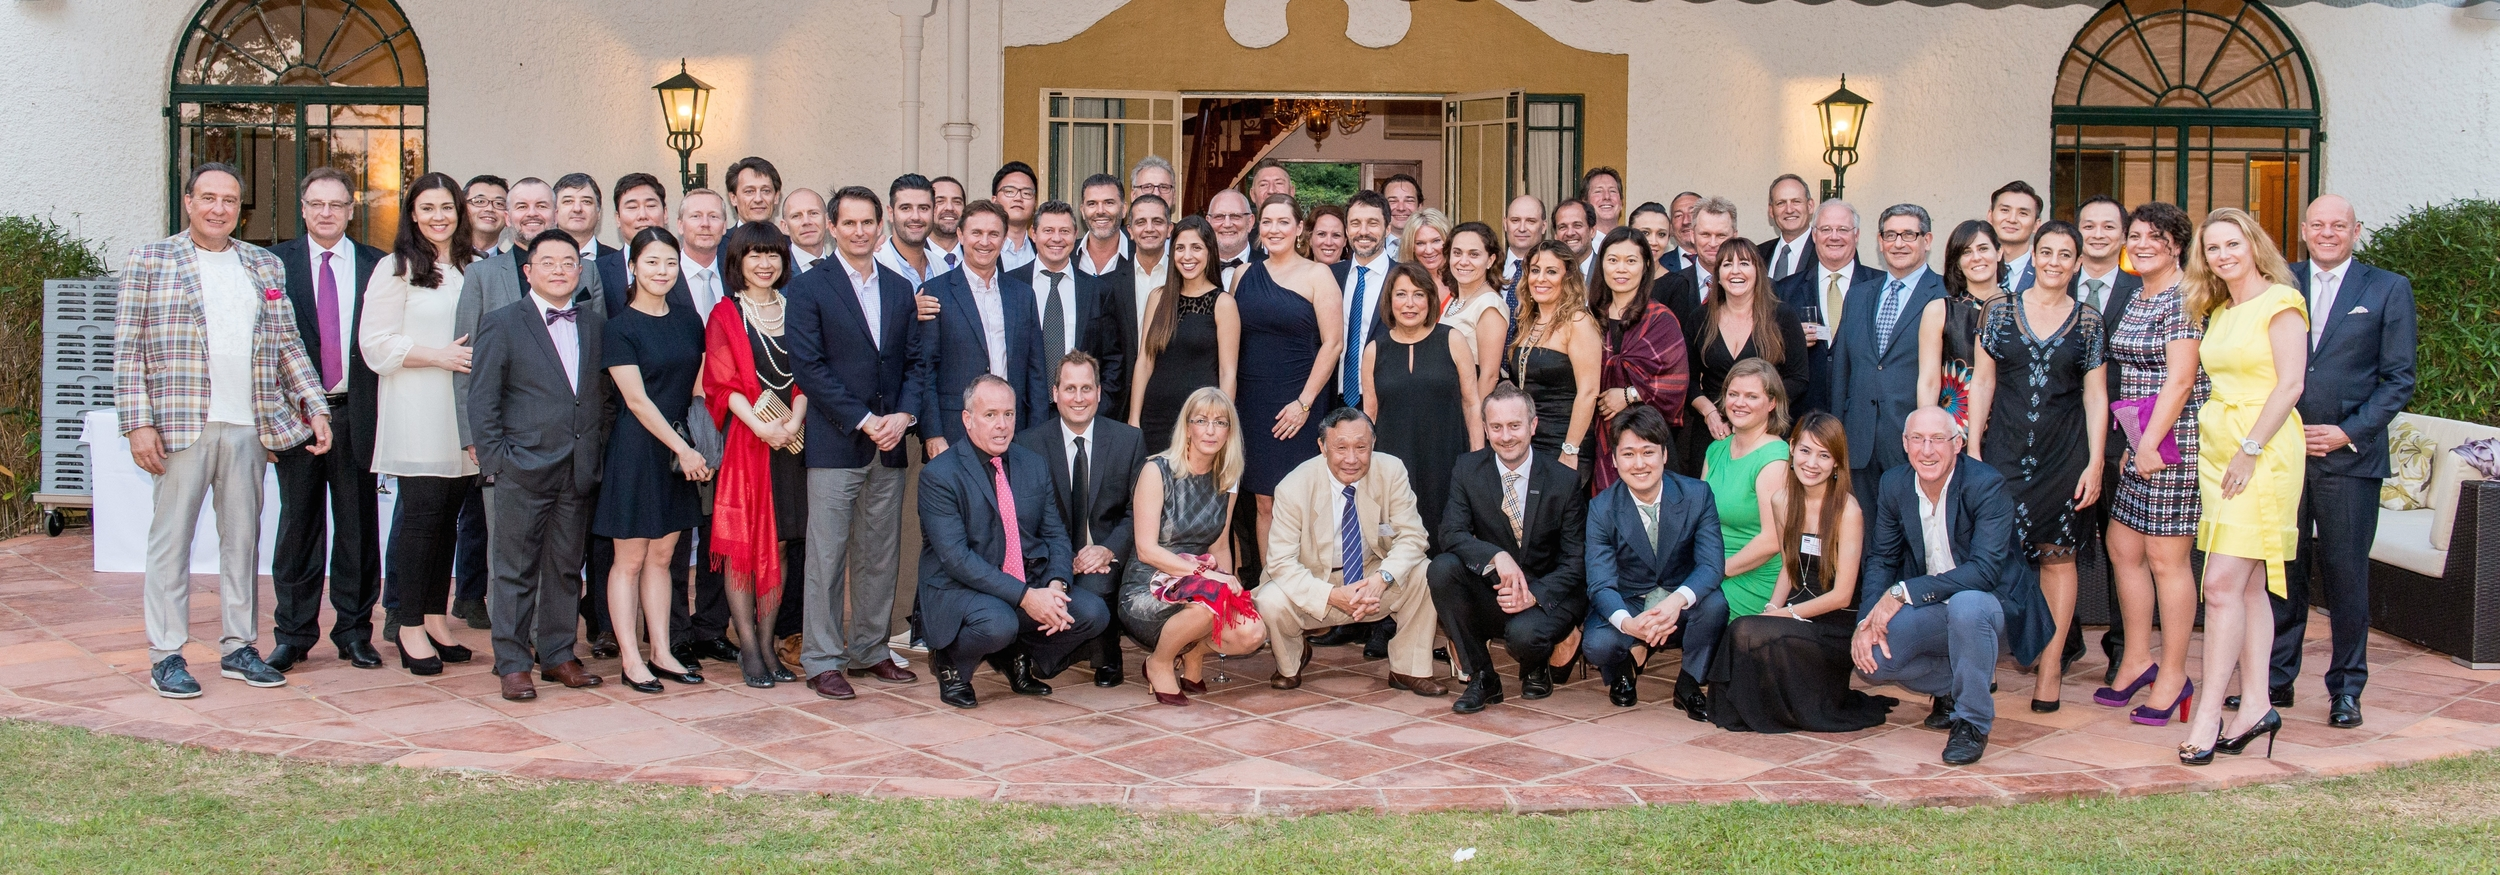 Members of the 52 country IGC Global Promo8ons Alliance at the Residence of the Consul General of the Kingdom of the Netherlands, Hong Kong, China